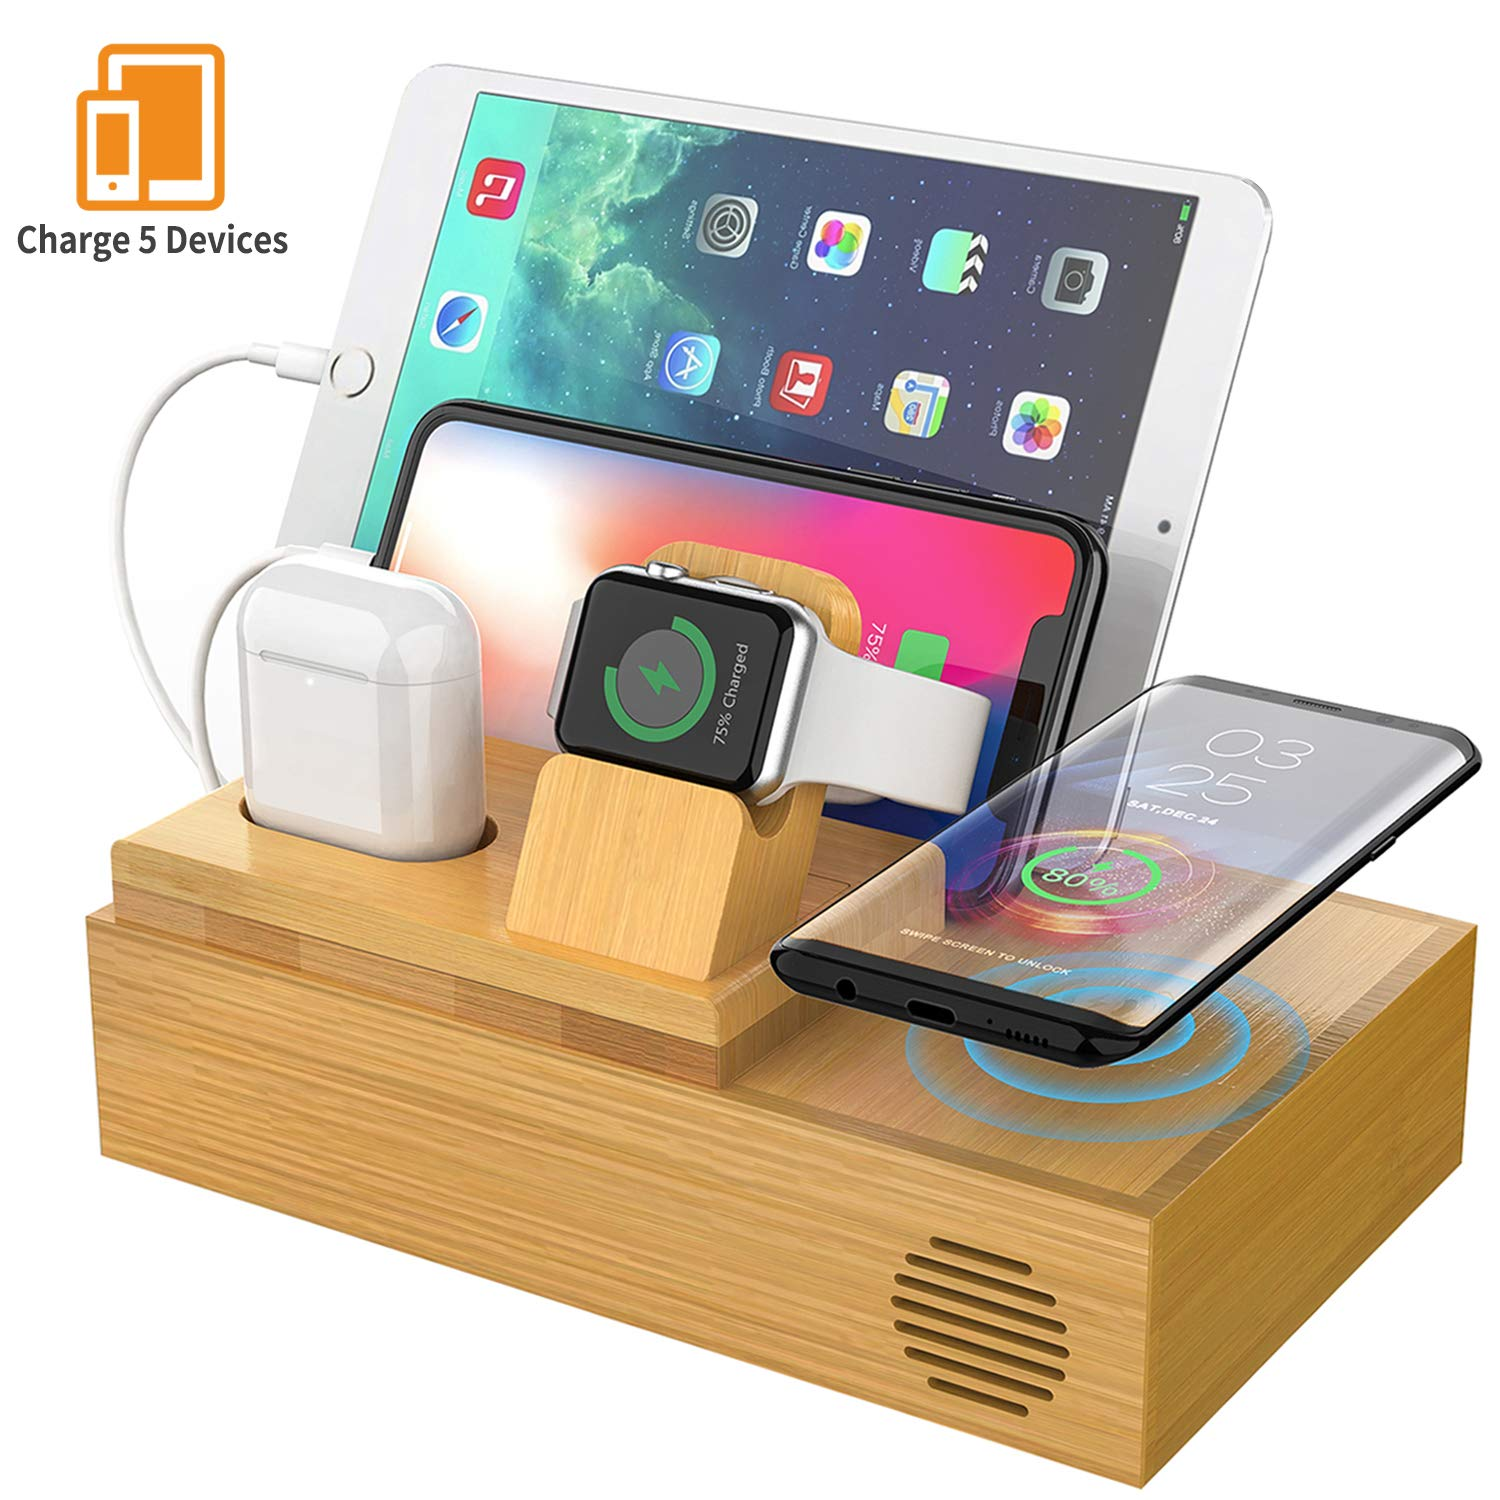 CHGeek Bamboo Wireless Charger-Charging-Station-for-Multiple-Devices, Charging Dock for Apple Watch, AirPods. -Wireless-Charging-Pad Organizer for iPhone, Tablets. Compatible iPhone X/XS/XR/Xs Max/8 by CHGeek